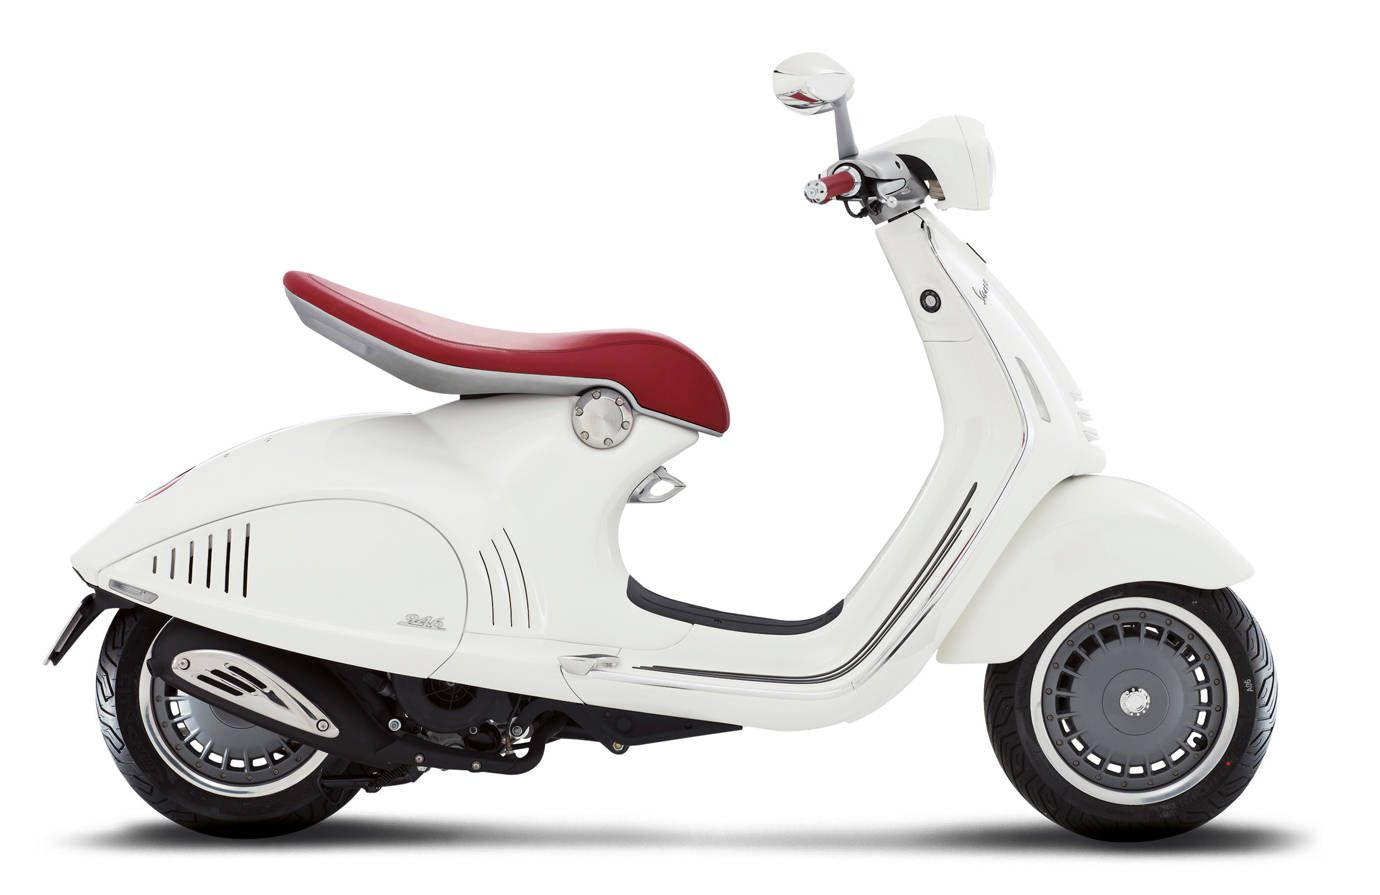 Modifikasi vespa super apps directories - 2015 Vespa 946 Bellissima Products I Love Pinterest Vespa Scooter Images And Vespa Motorcycle